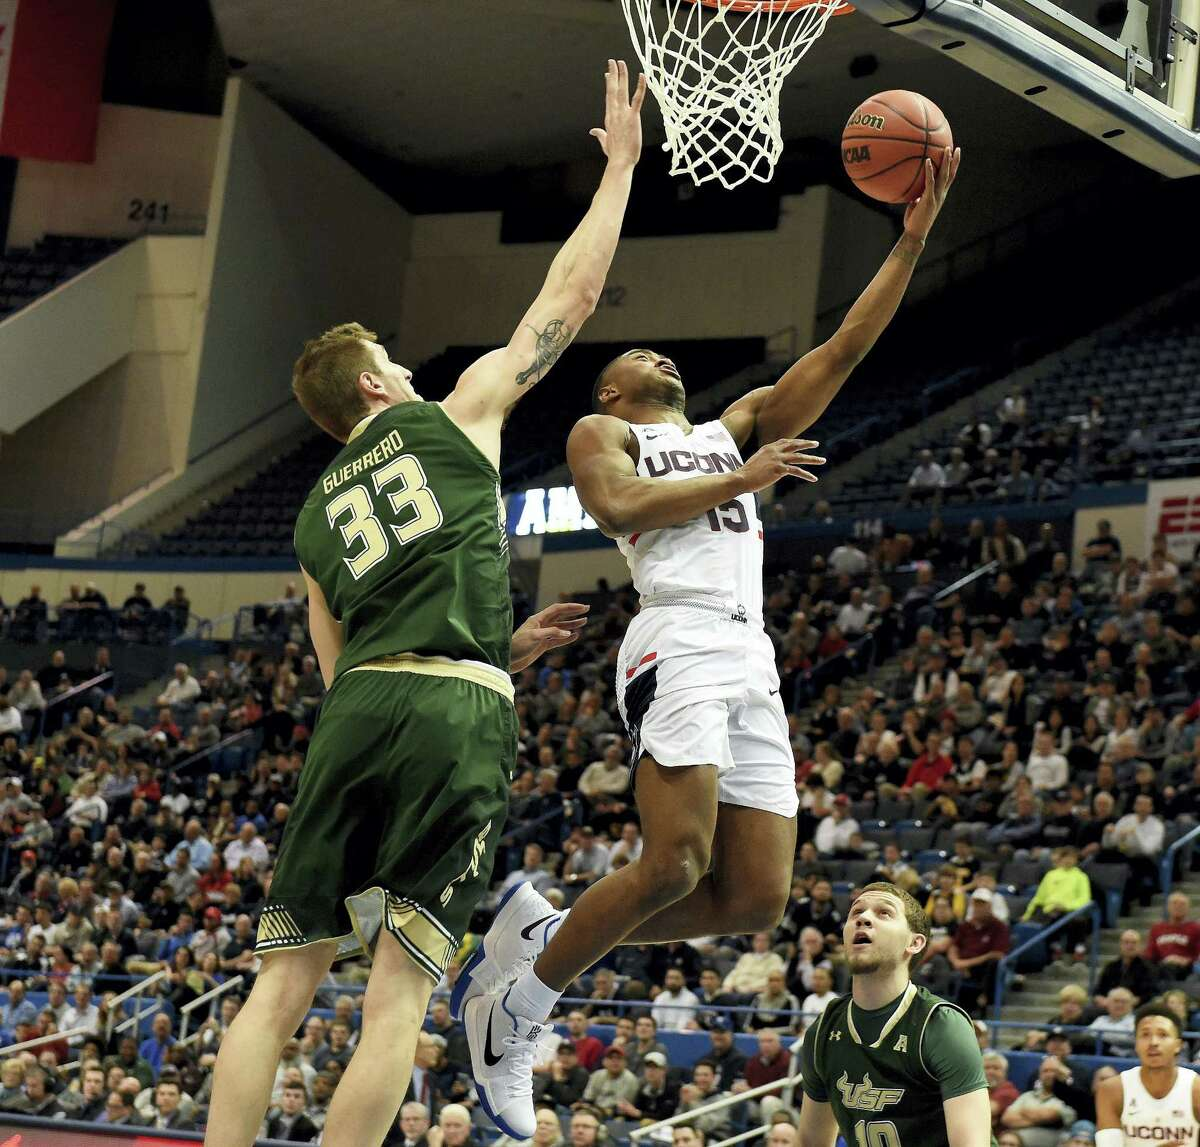 UConn's Rodney Purvis goes up for a basket against South Florida's Ruben Guerrero during the first half of their AAC tournament game on Thursday in Hartford.